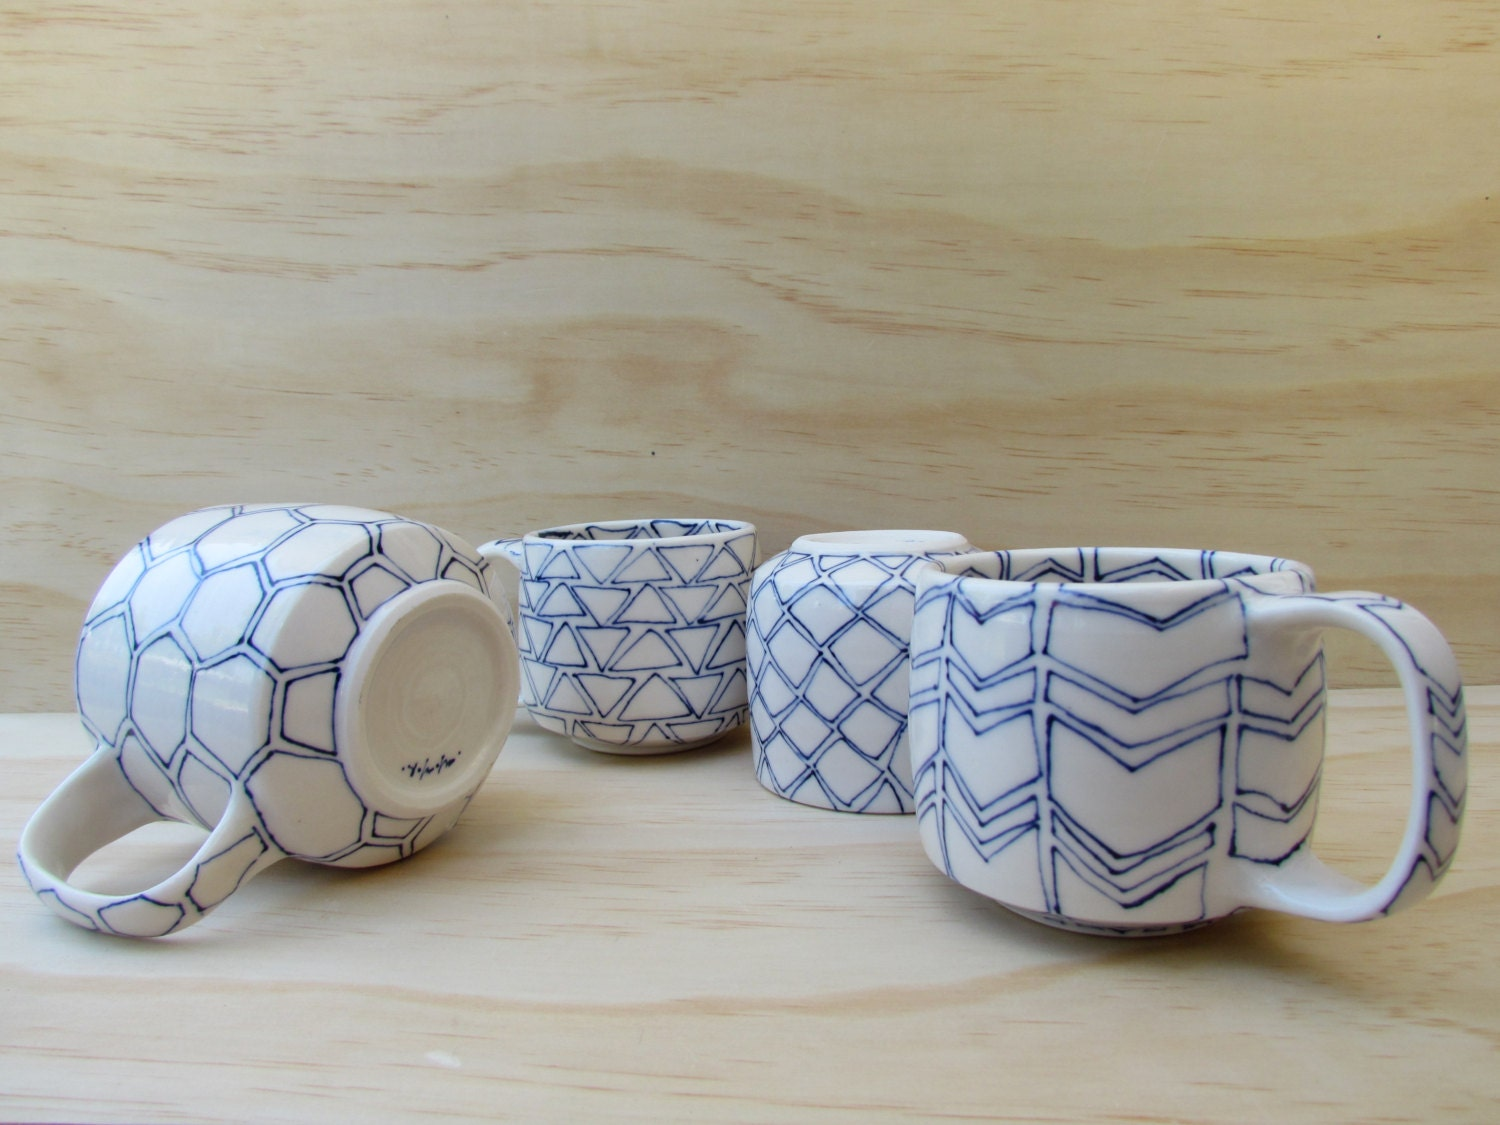 Set of Four Tea or Coffee Mugs. Shapes in blue and white or black and white. Geometric design. Modern porcelain mugs. MADE TO ORDER.